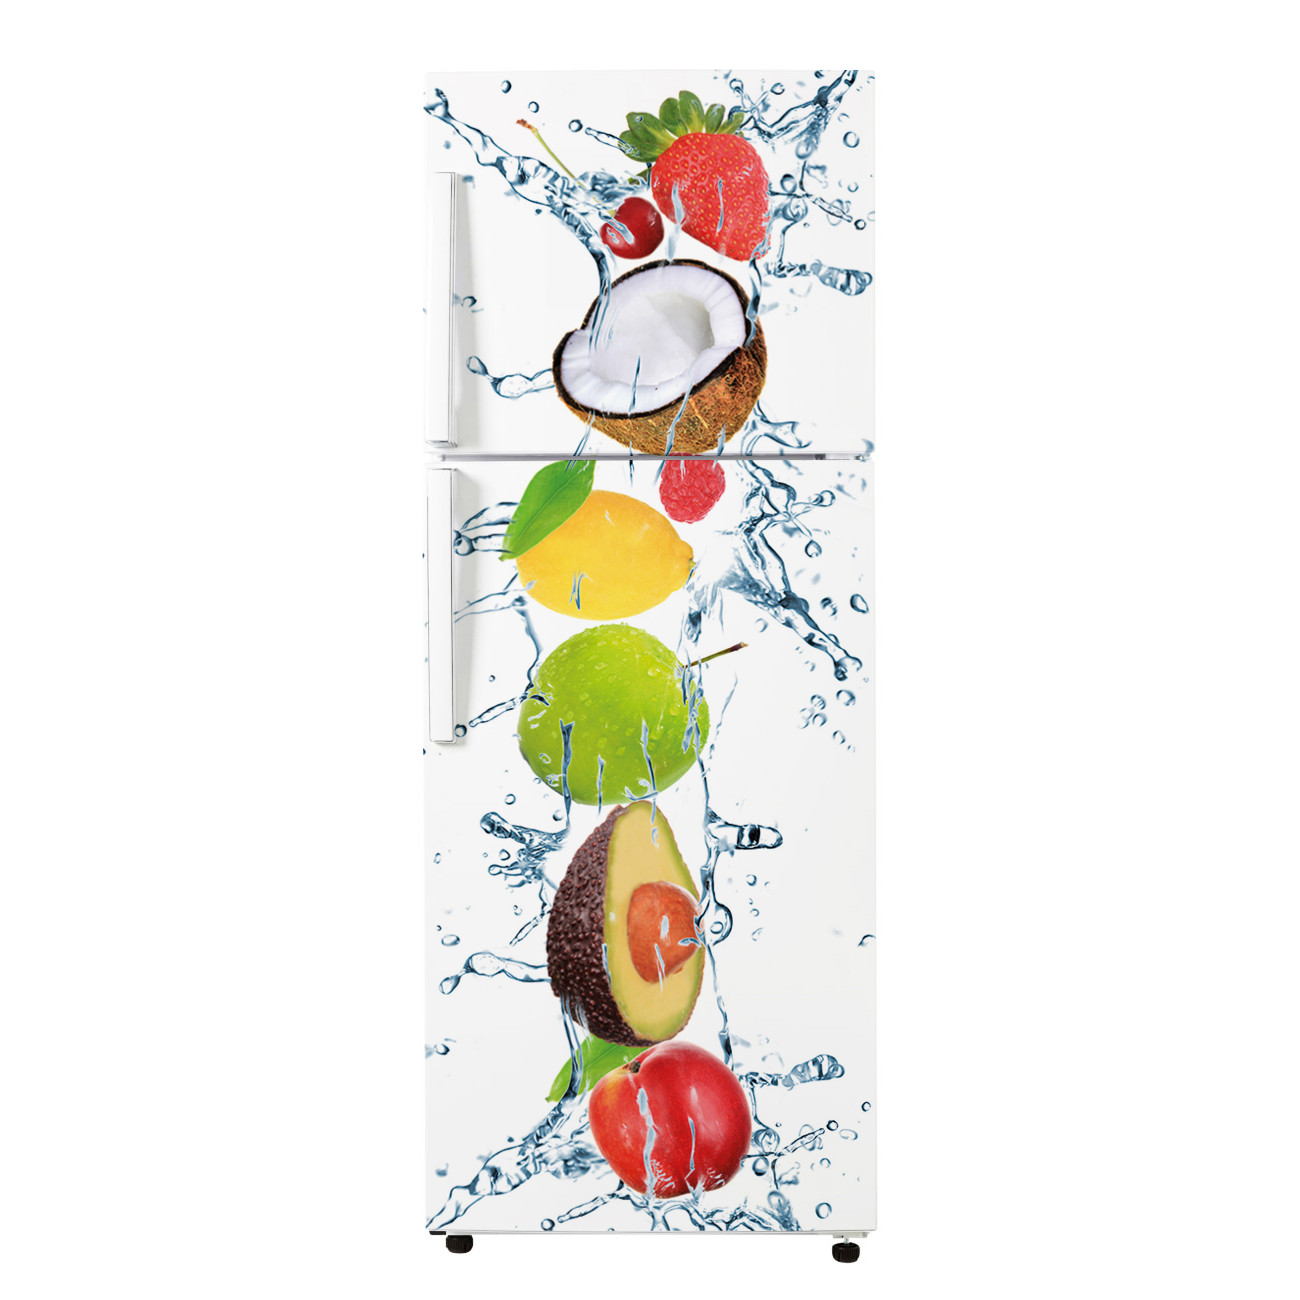 stickers frigo fruits 7 des prix 50 moins cher qu 39 en magasin. Black Bedroom Furniture Sets. Home Design Ideas